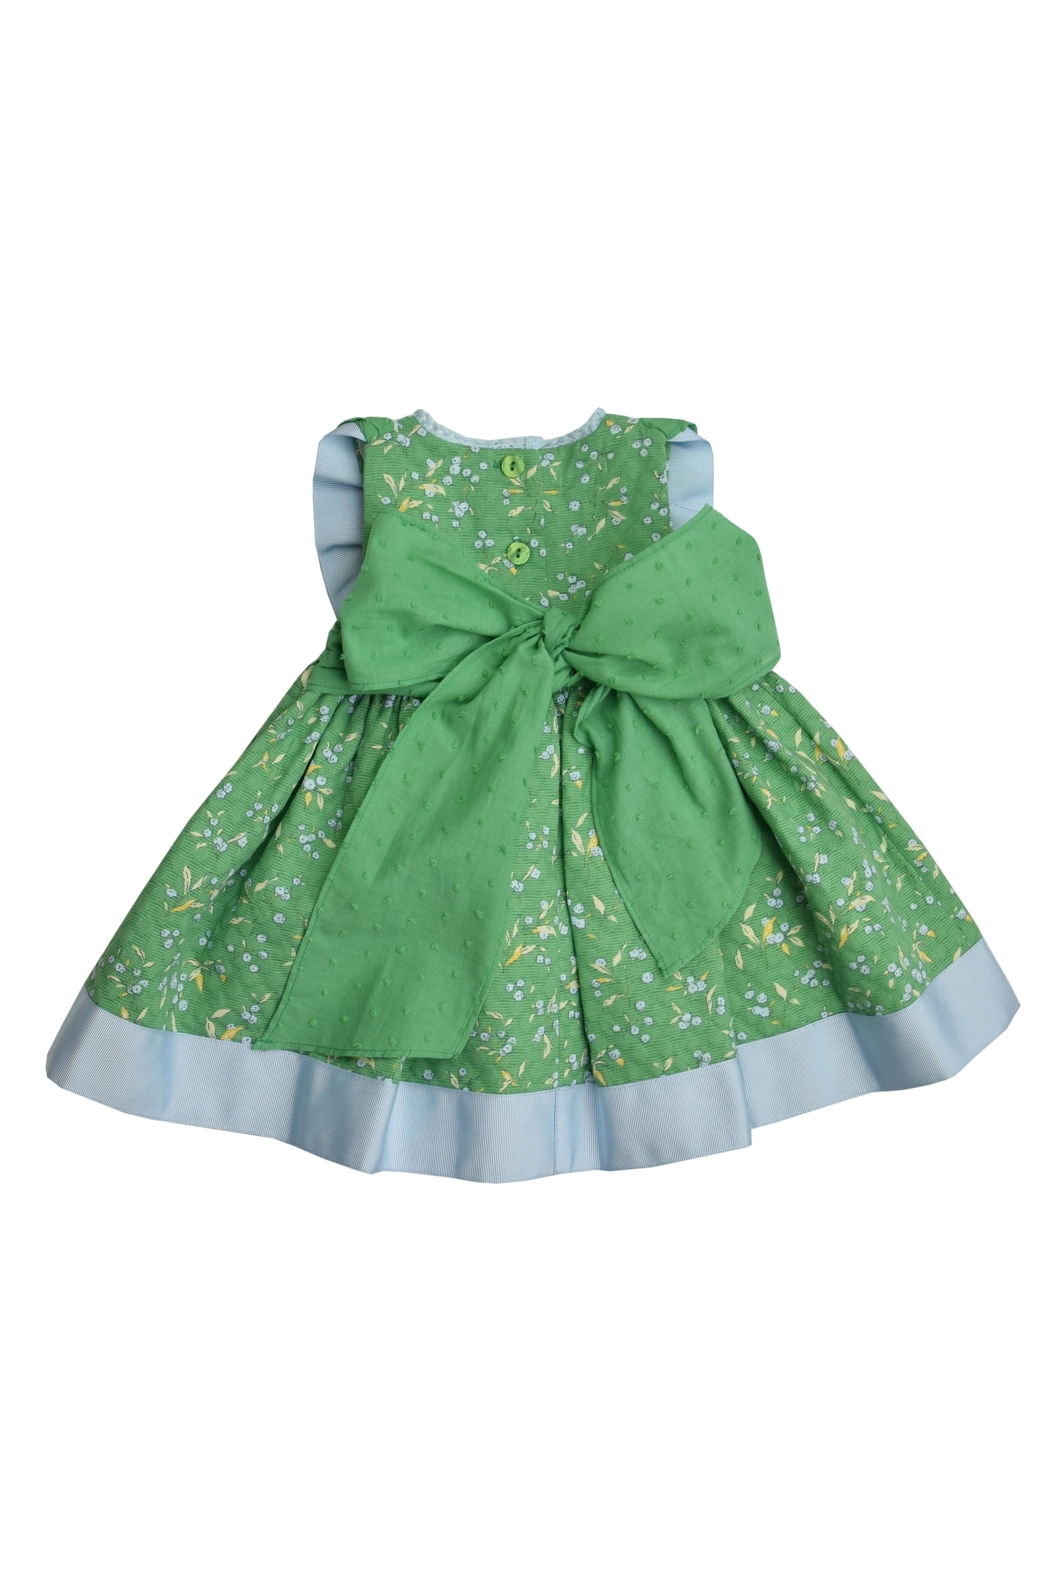 Foque Green Floral Dress - Front Full Image